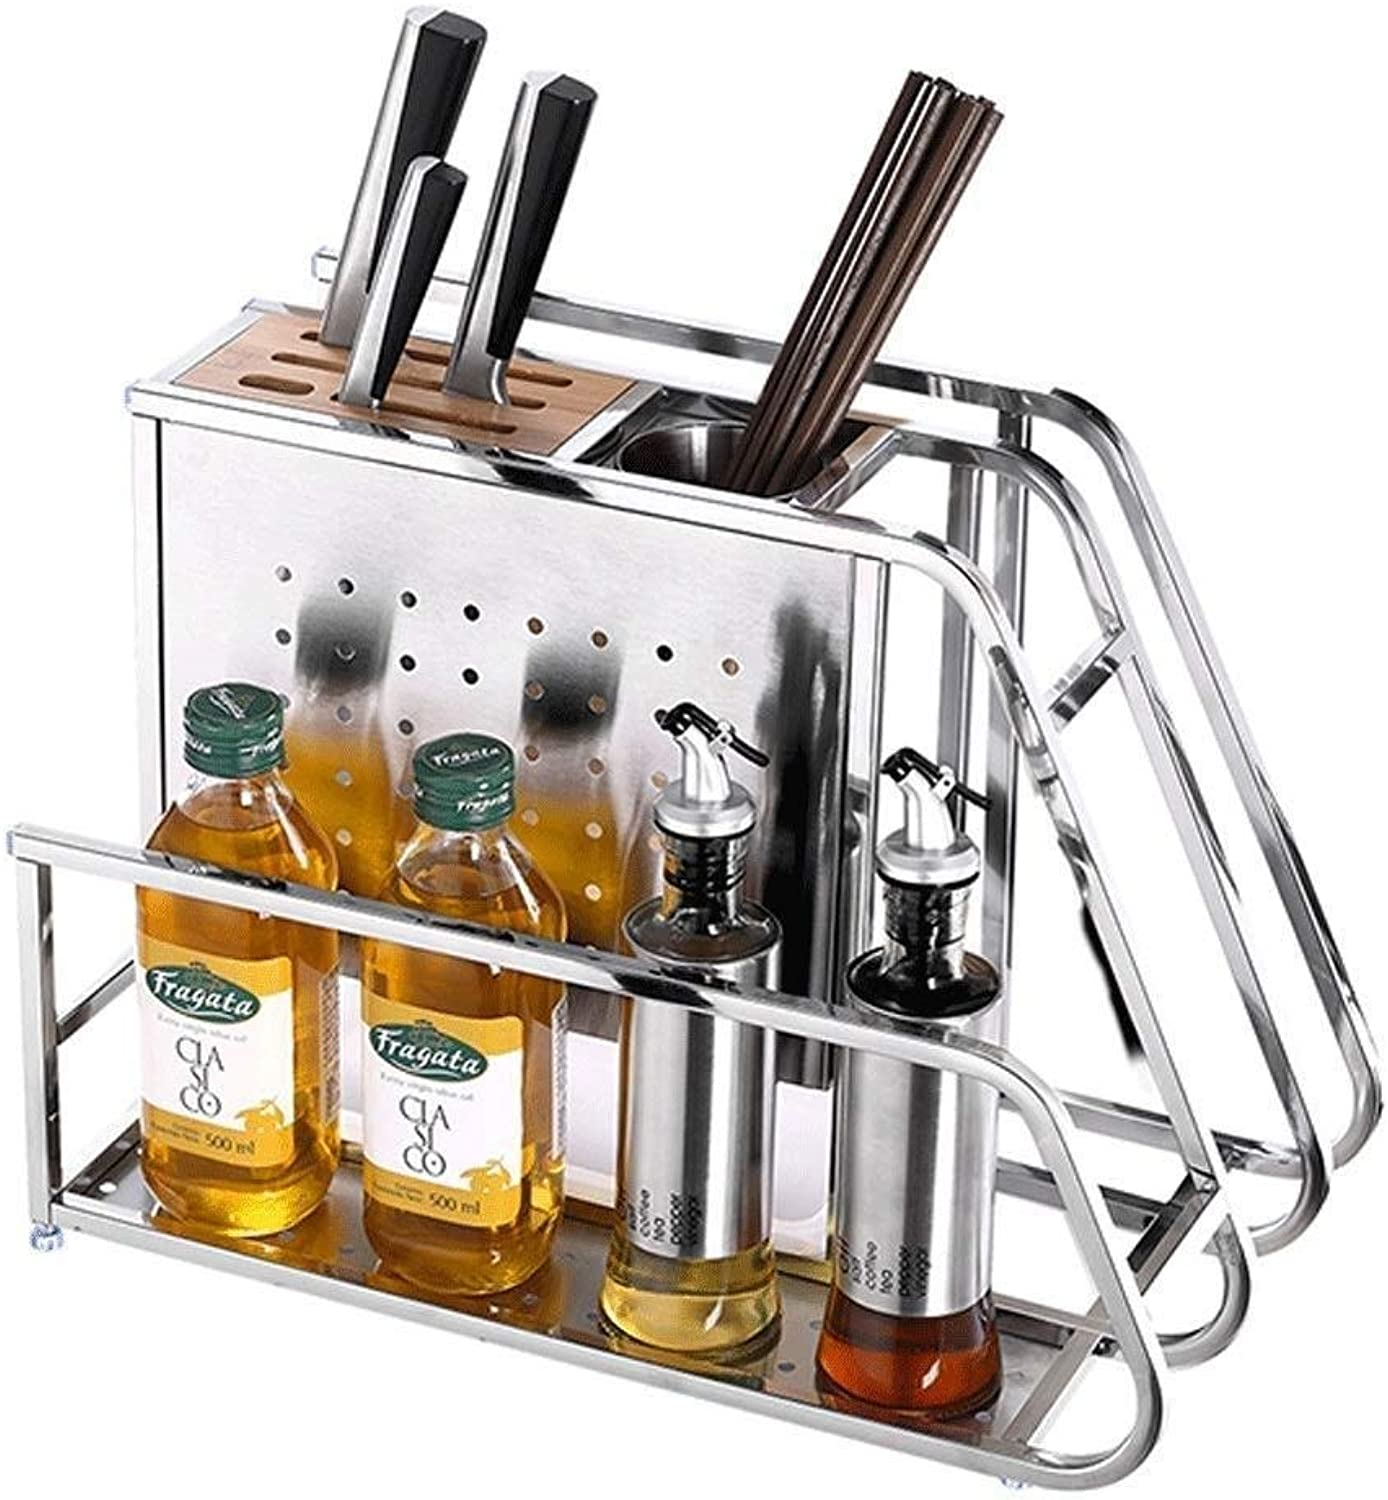 Organizer Rack Knife Holder- Stainless Steel Knife Holder Kitchen Supplies Cutting Board Kitchen Knife Cutting Board Cutting Tool Holder Knife Holder Rack Storage Rack ZXMDMZ